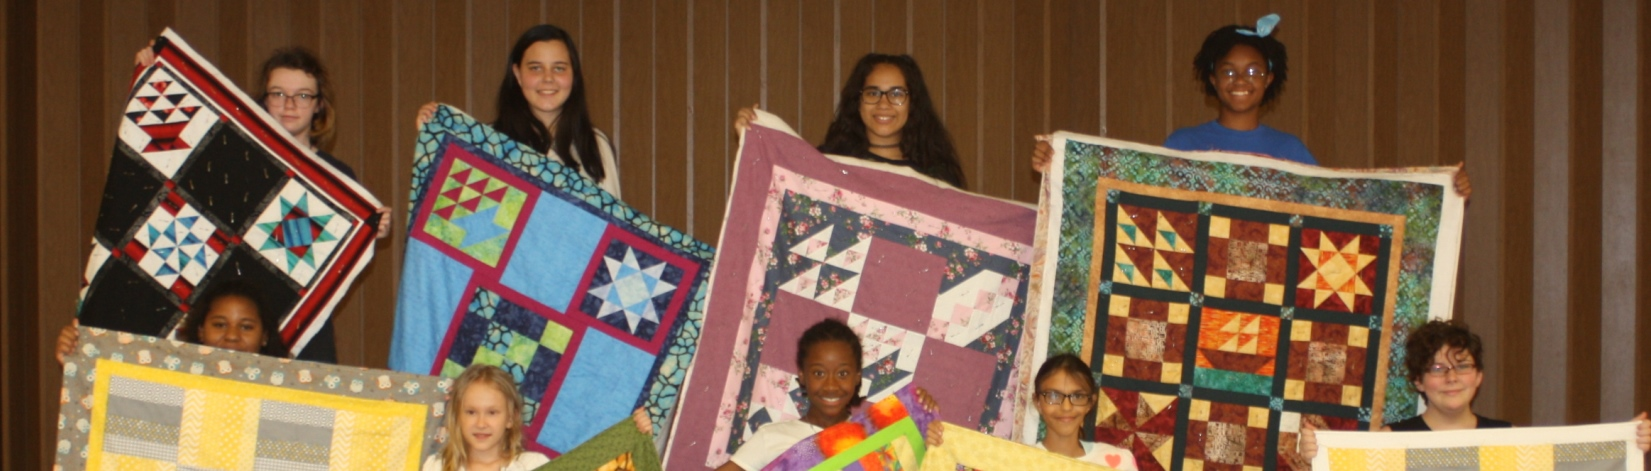 A group of 4-H youth holding pretty quilts they made at the 4-H Quilt Camp